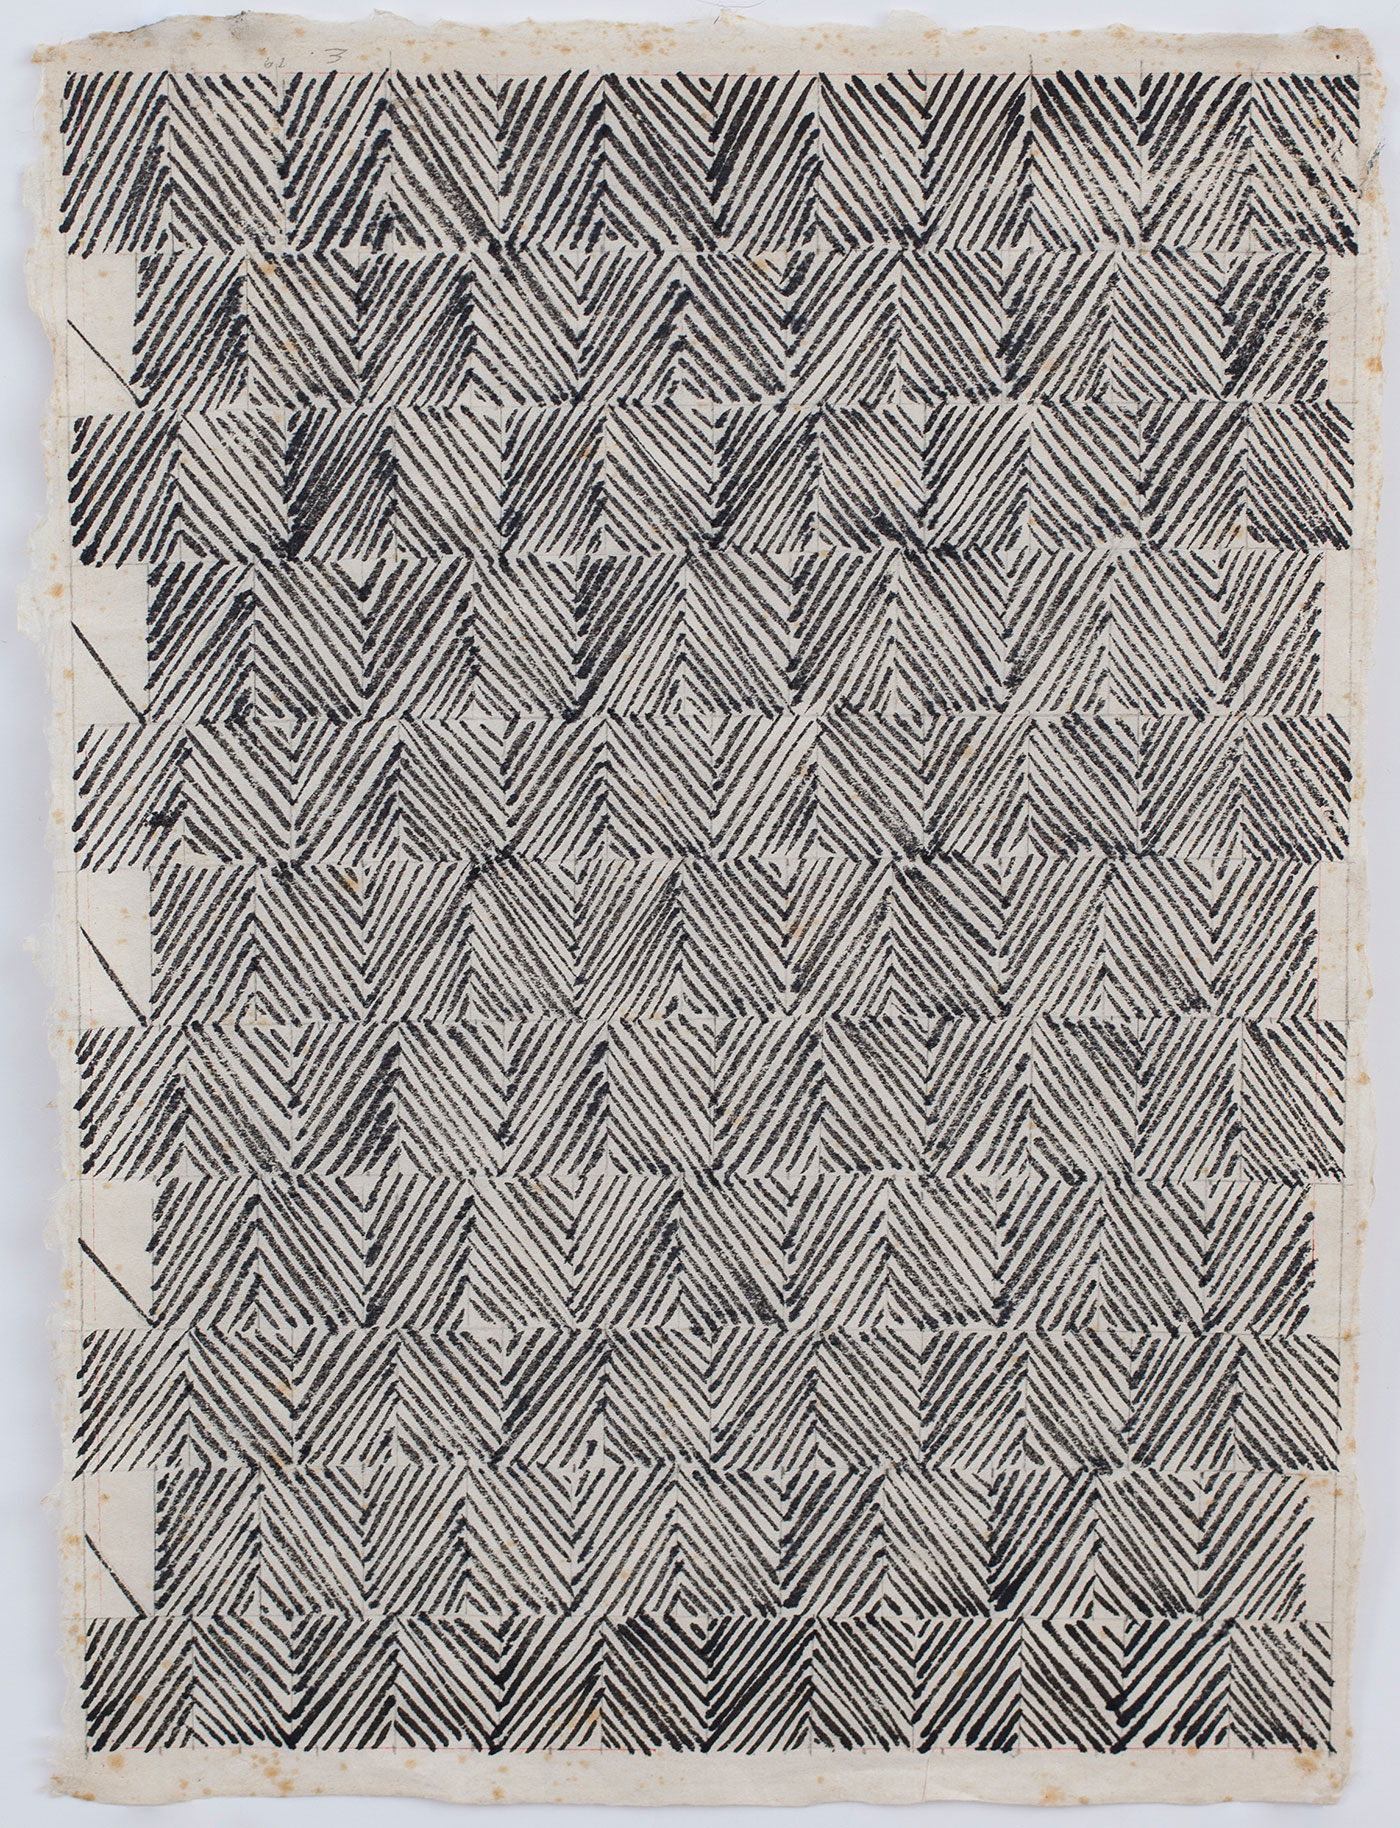 "Ed Moses, ""Untitled"" (1979), ink on handmade paper, 17 1/4 x 12 3/4 inches"